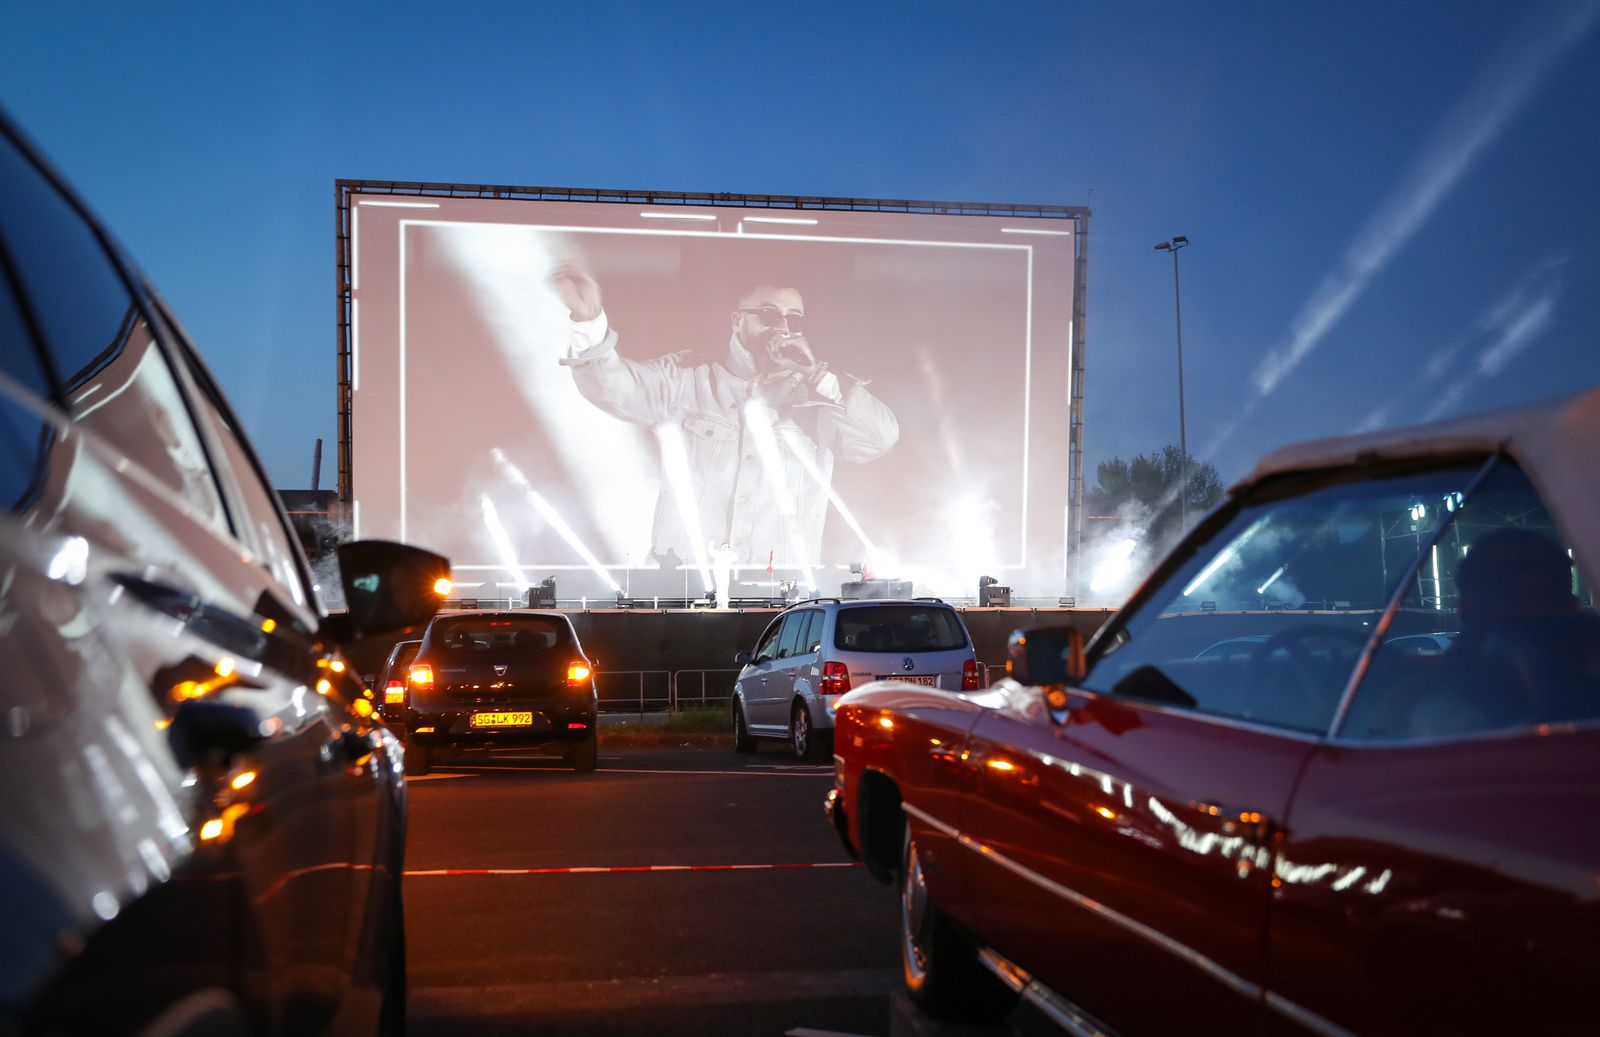 SIDO - Live! At Drive-In Cinema During The Coronavirus Crisis